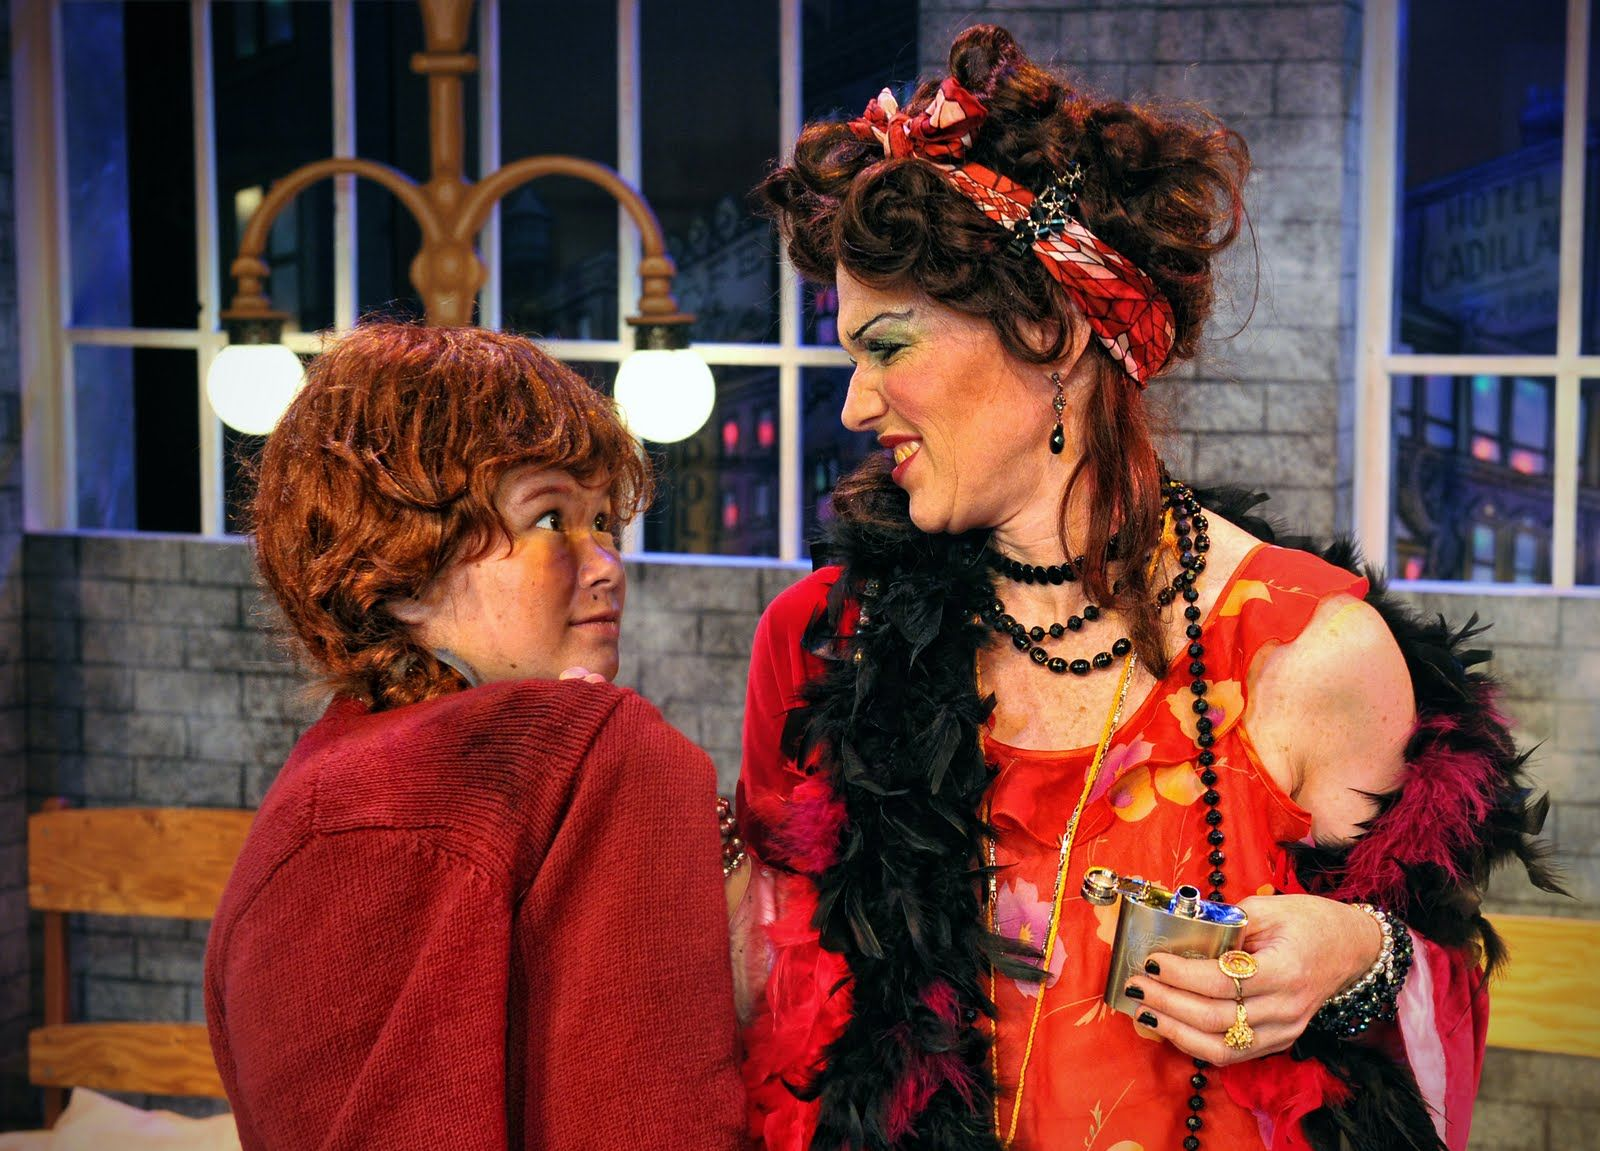 Annie+and+Ms+Hannigan.jpg (1600×1151)  sc 1 st  Pinterest & Annie+and+Ms+Hannigan.jpg (1600×1151) | Annie Ideas | Pinterest | Annie